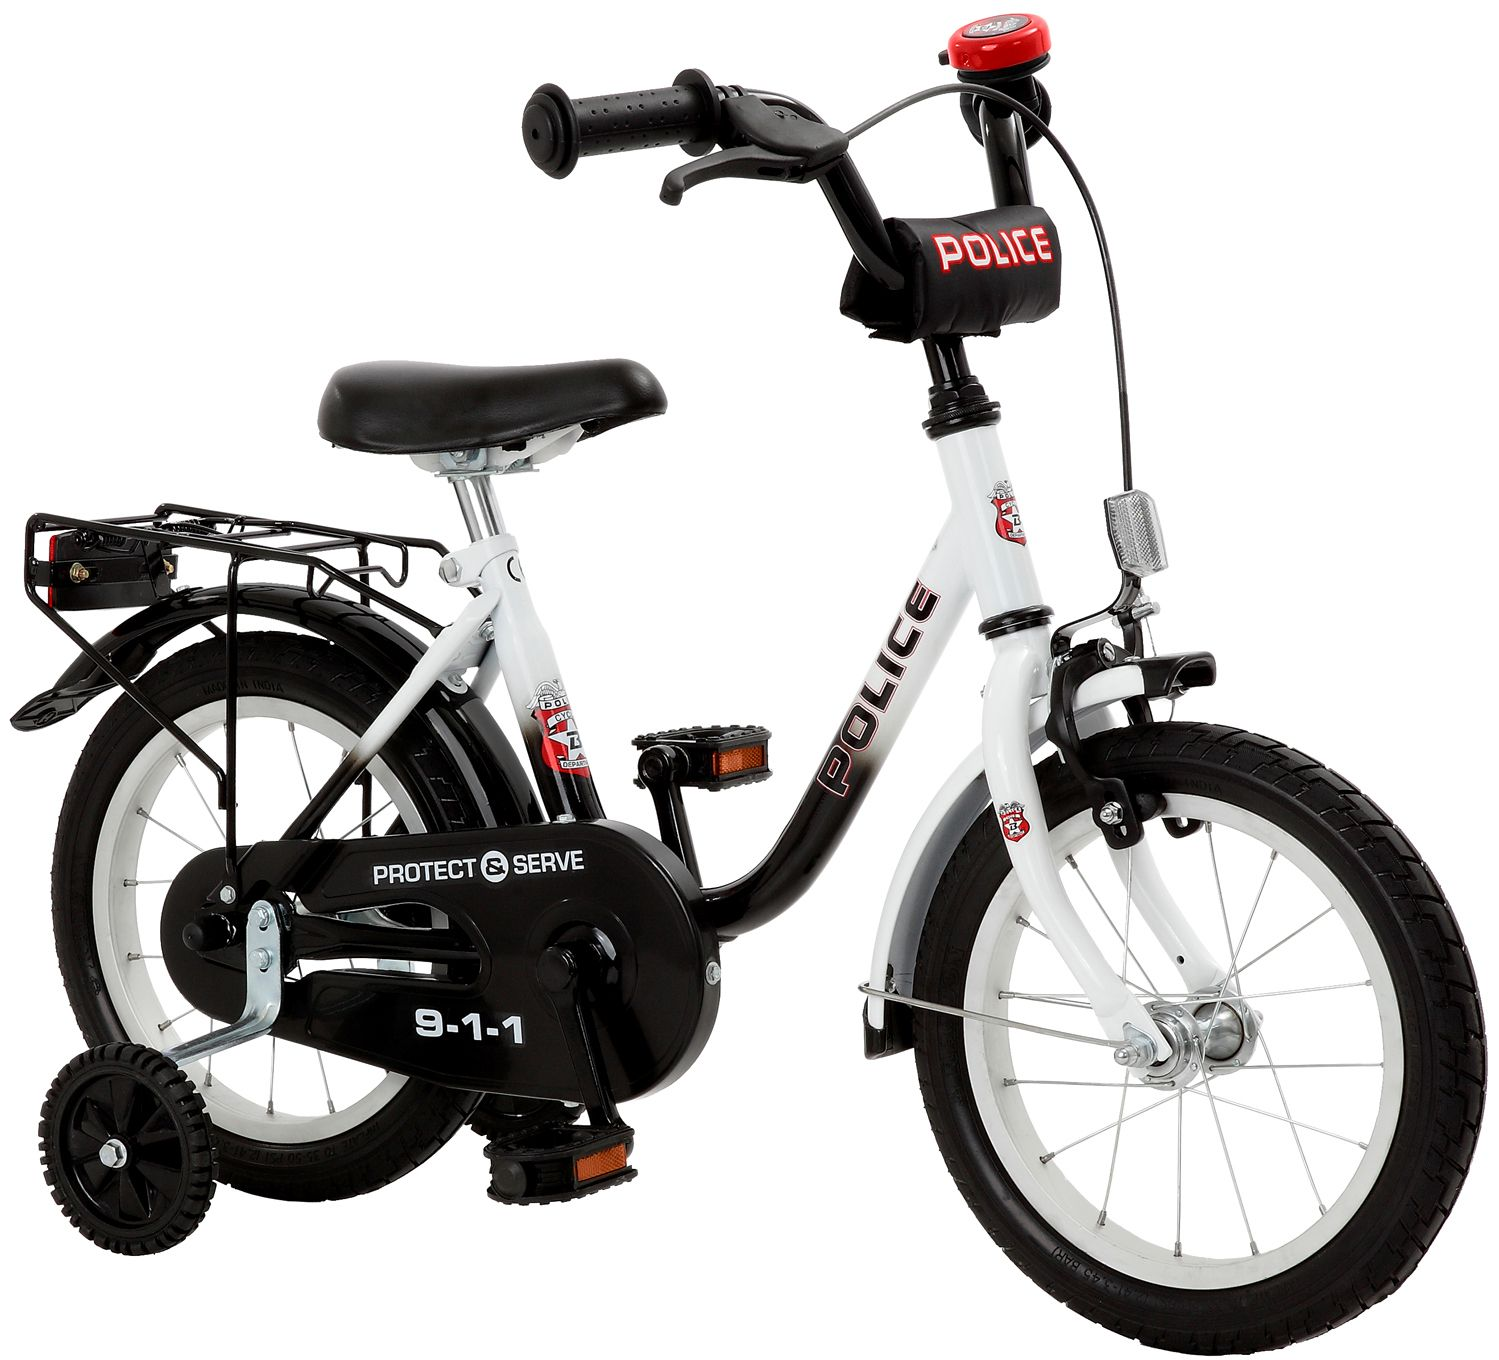 CYCLES4KIDS Cycles4Kids Kinderfahrrad »Police, 35,6 cm (14 Zoll)«